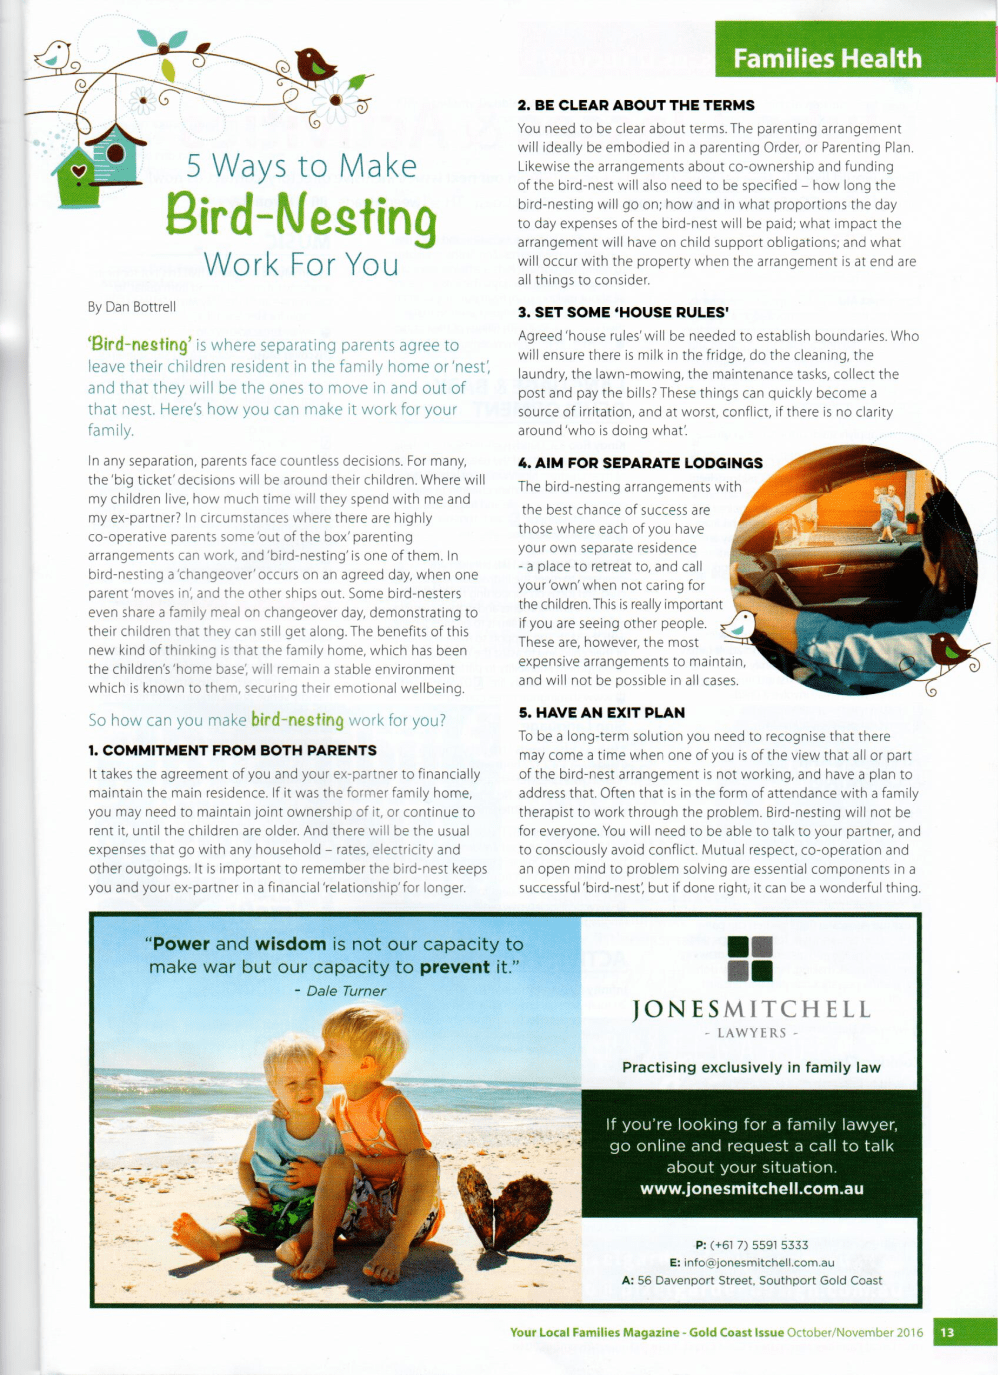 5-ways-to-make-bird-nesting-work-for-you-families-magazine-gold-coast-issue-october-november-2016